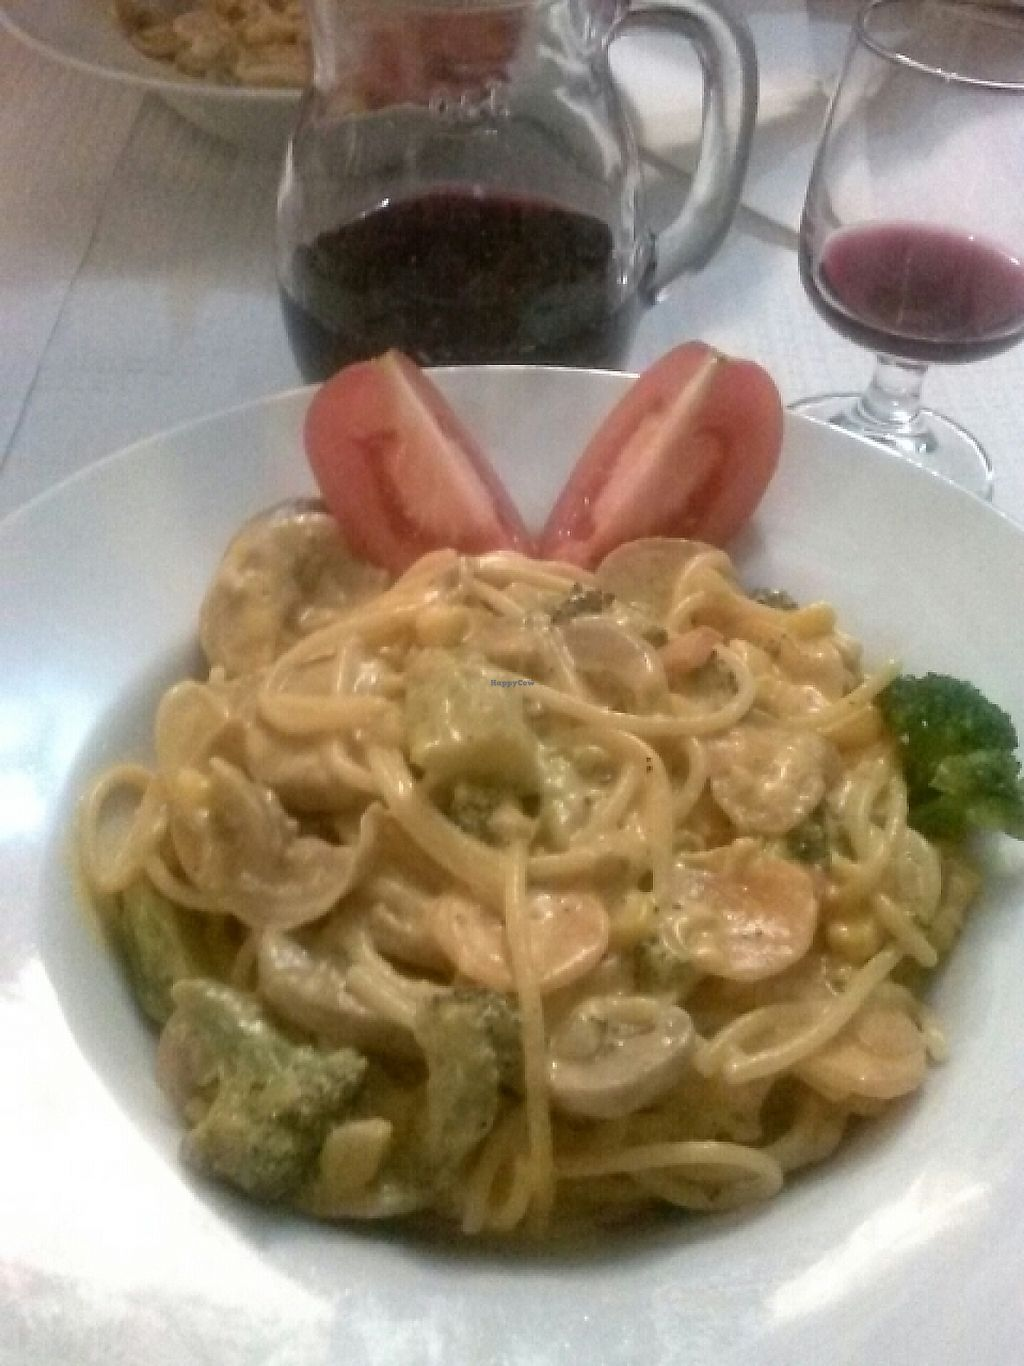 """Photo of Restaurante Planicie  by <a href=""""/members/profile/DODIBOSSAS"""">DODIBOSSAS</a> <br/>Pasta with vegetables and soy cream <br/> May 10, 2017  - <a href='/contact/abuse/image/91114/257664'>Report</a>"""